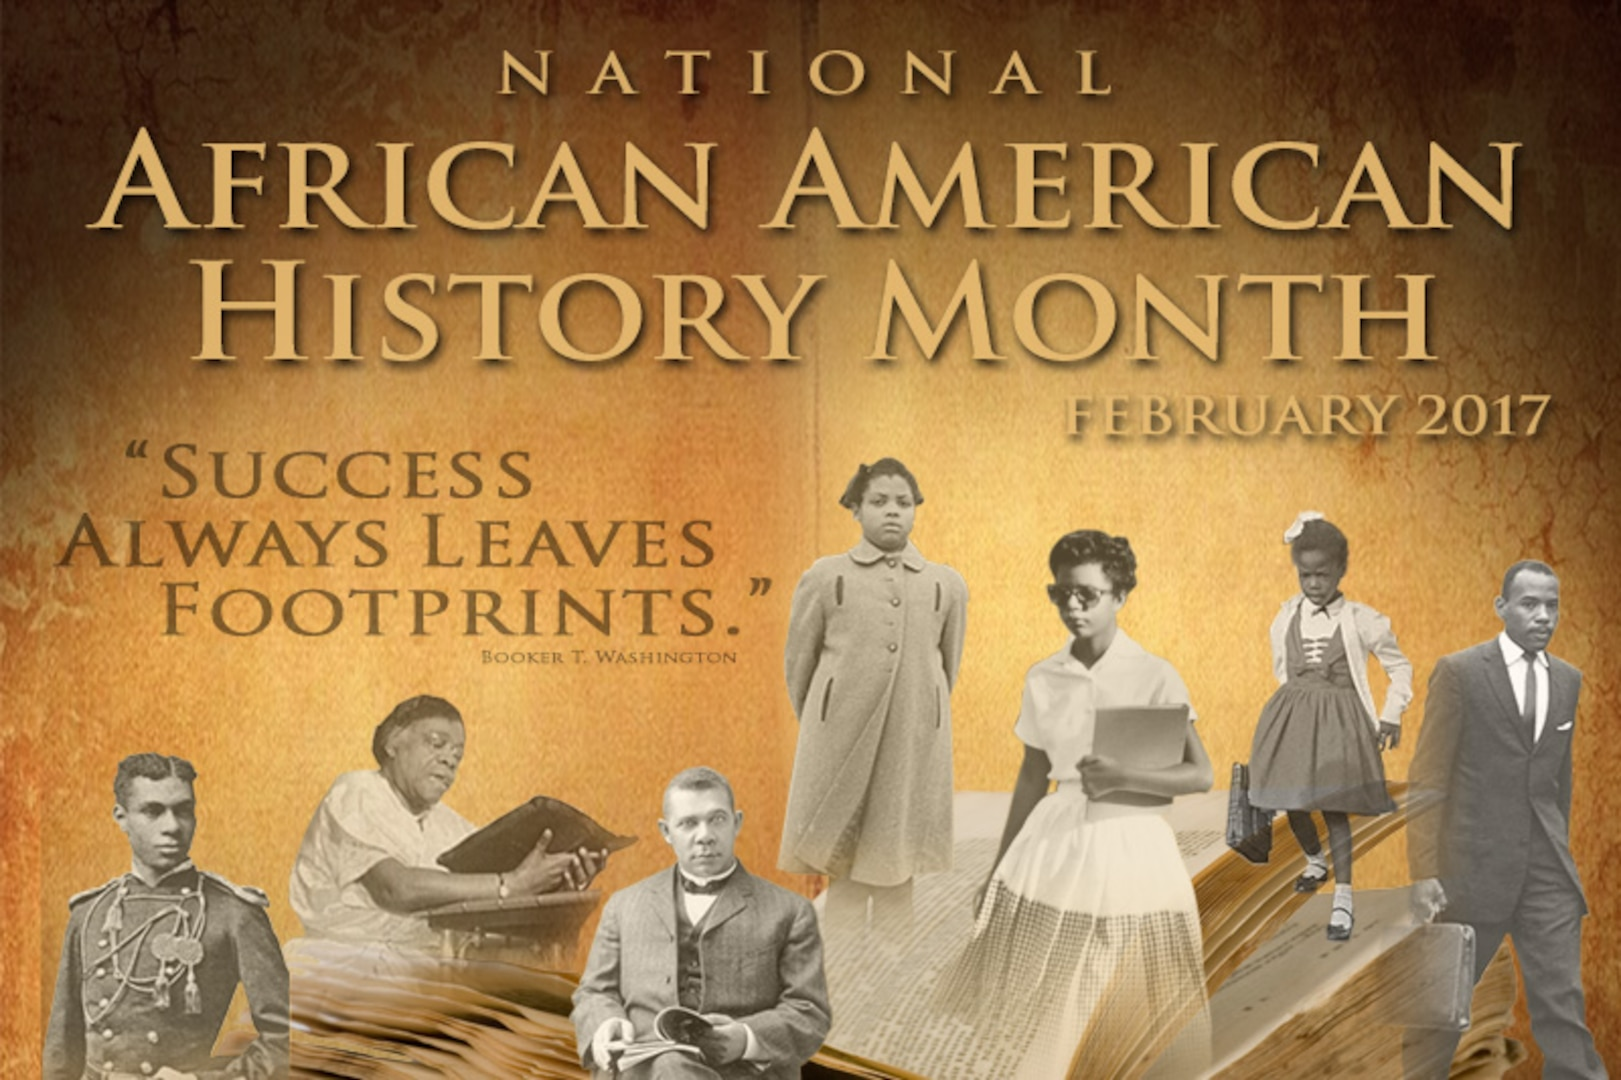 A collage of African American figures on a textured yellow background.